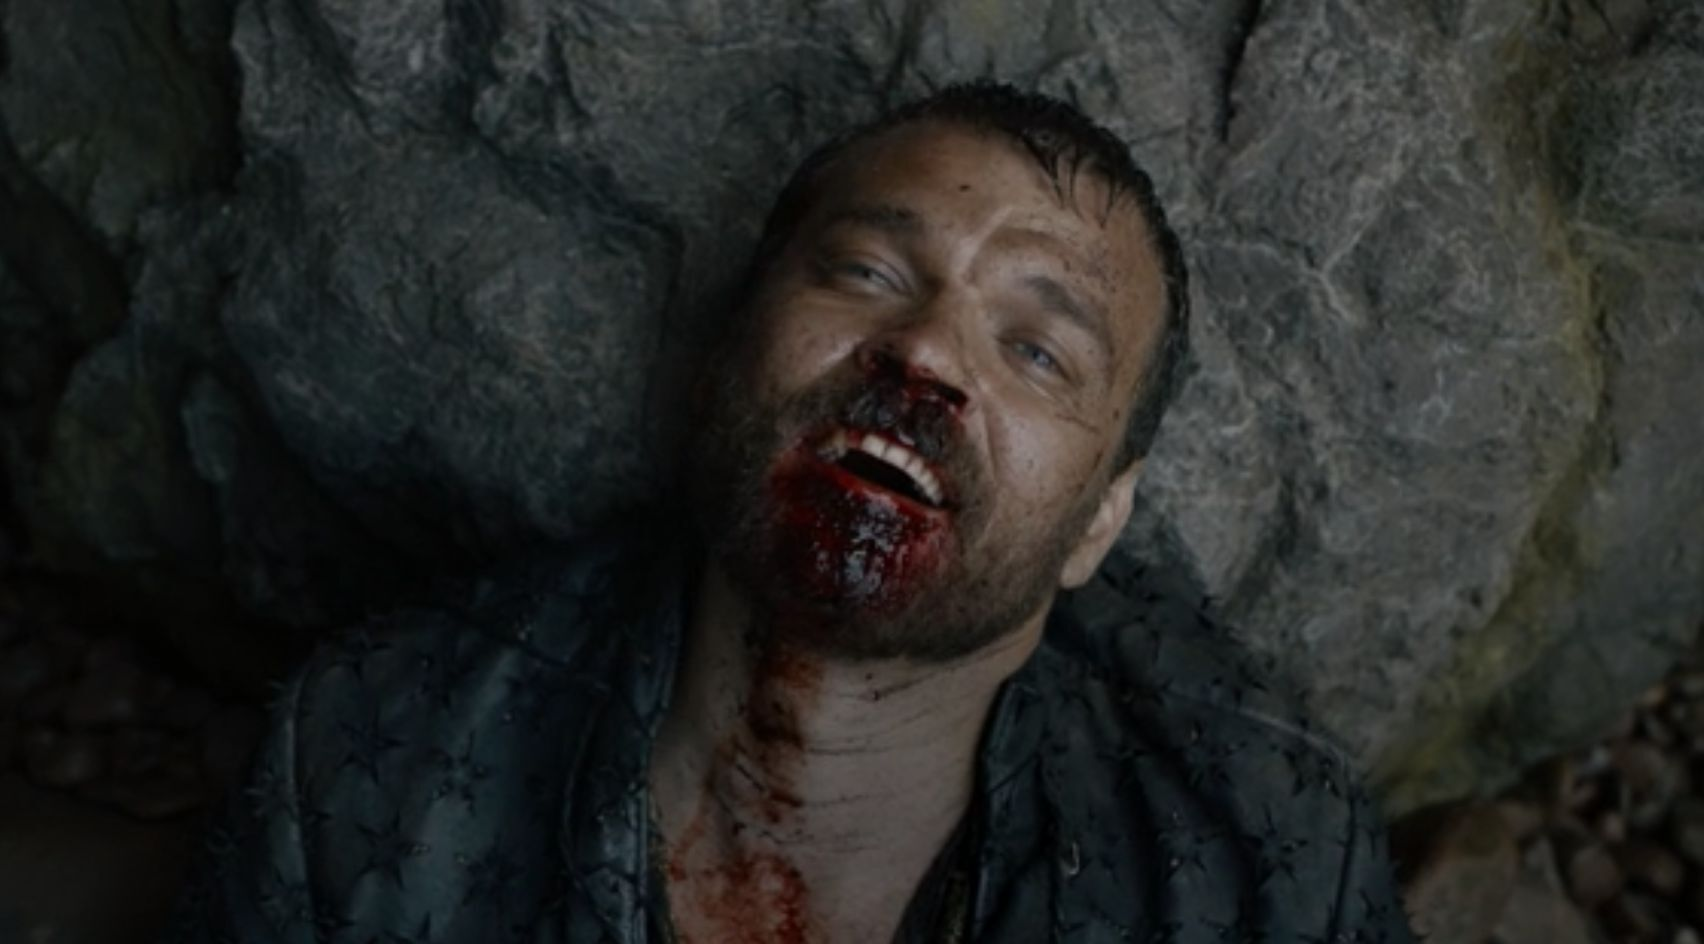 Pilou Asbæk (Euron Greyjoy) suggests alternate ending to A Song of Ice and Fire